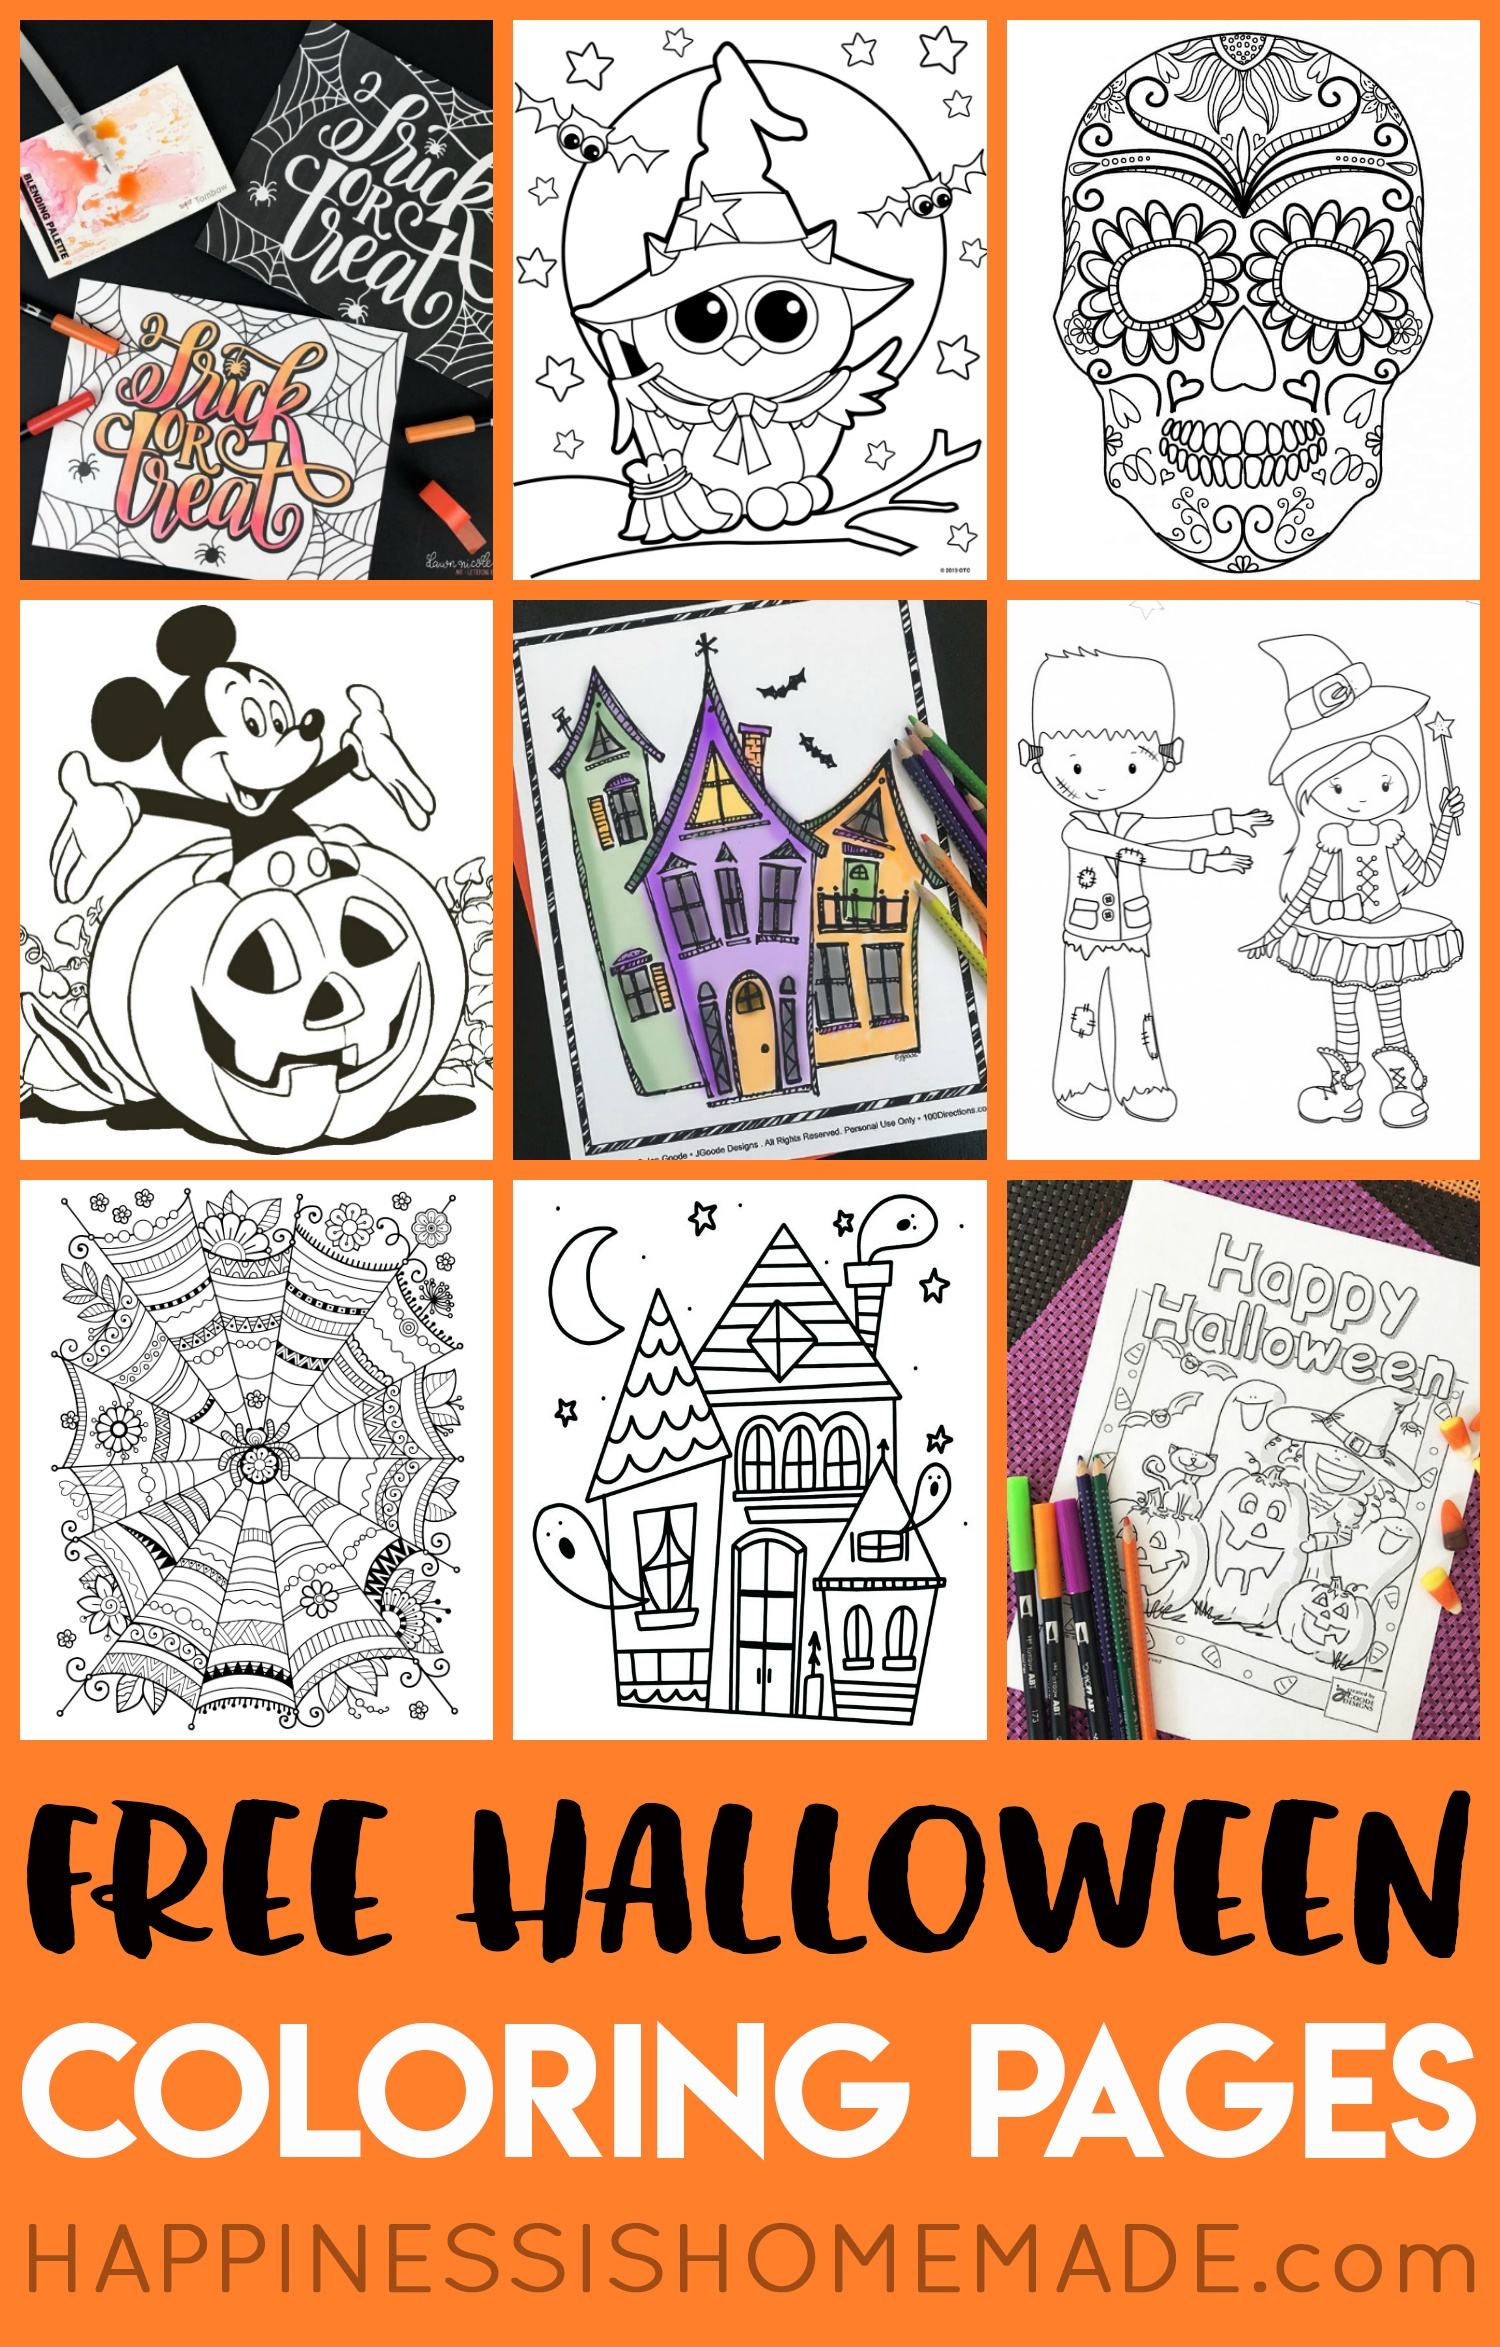 Free Halloween Coloring Pages For Adults & Kids - Happiness Is Homemade - Free Printable Charlie Brown Halloween Coloring Pages